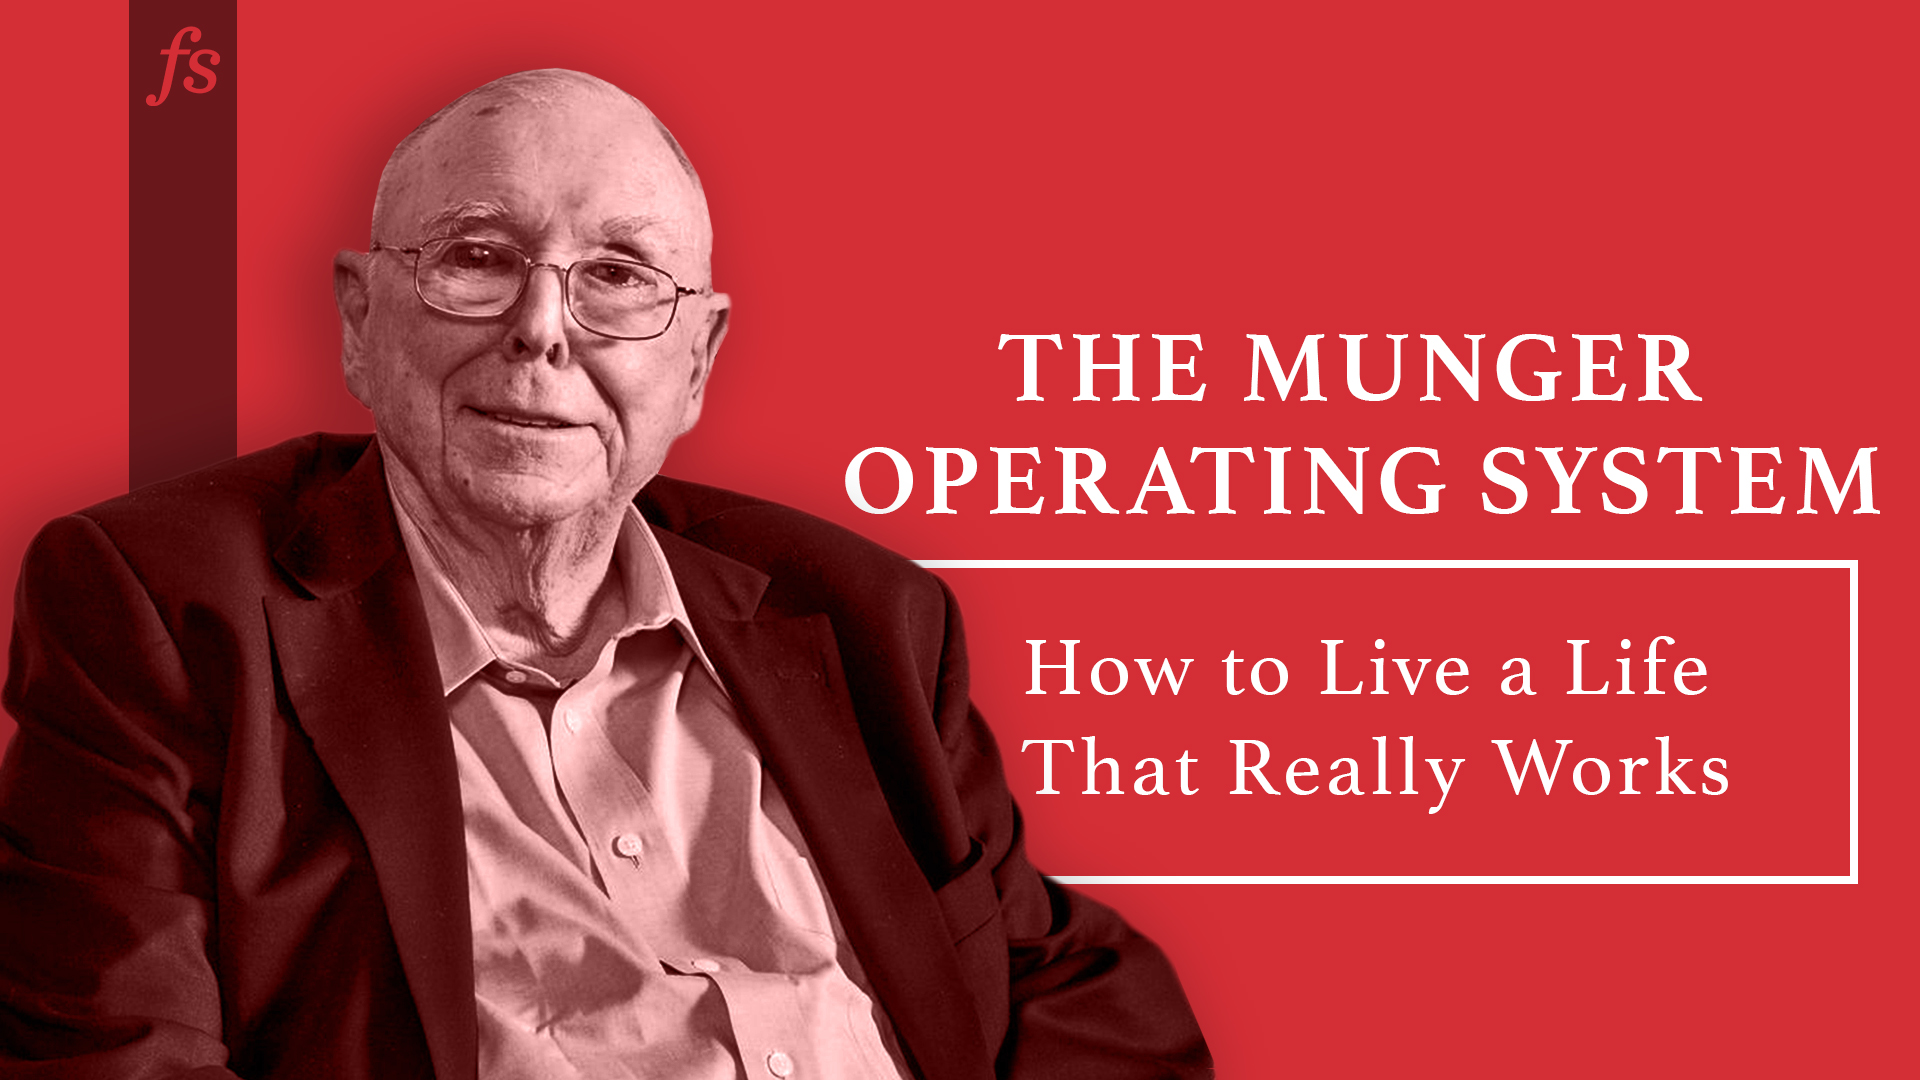 The Munger Operating System: A Life That Works